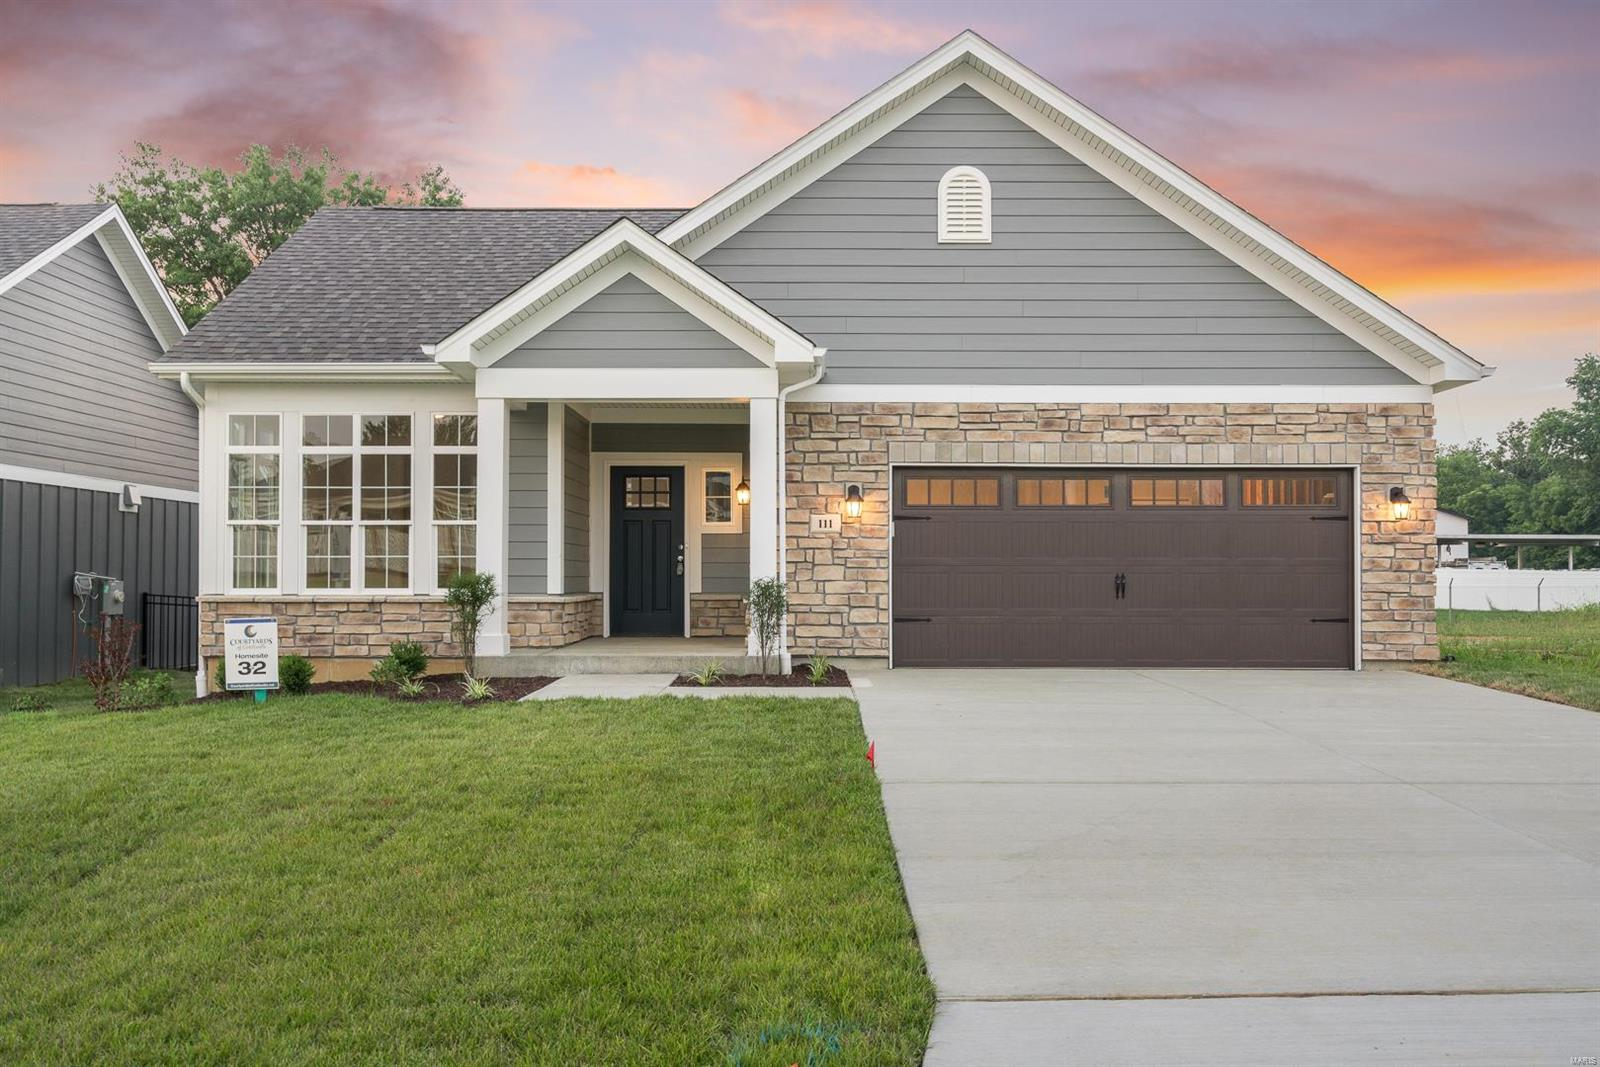 111 Lilac Blossom Property Photo - Cottleville, MO real estate listing